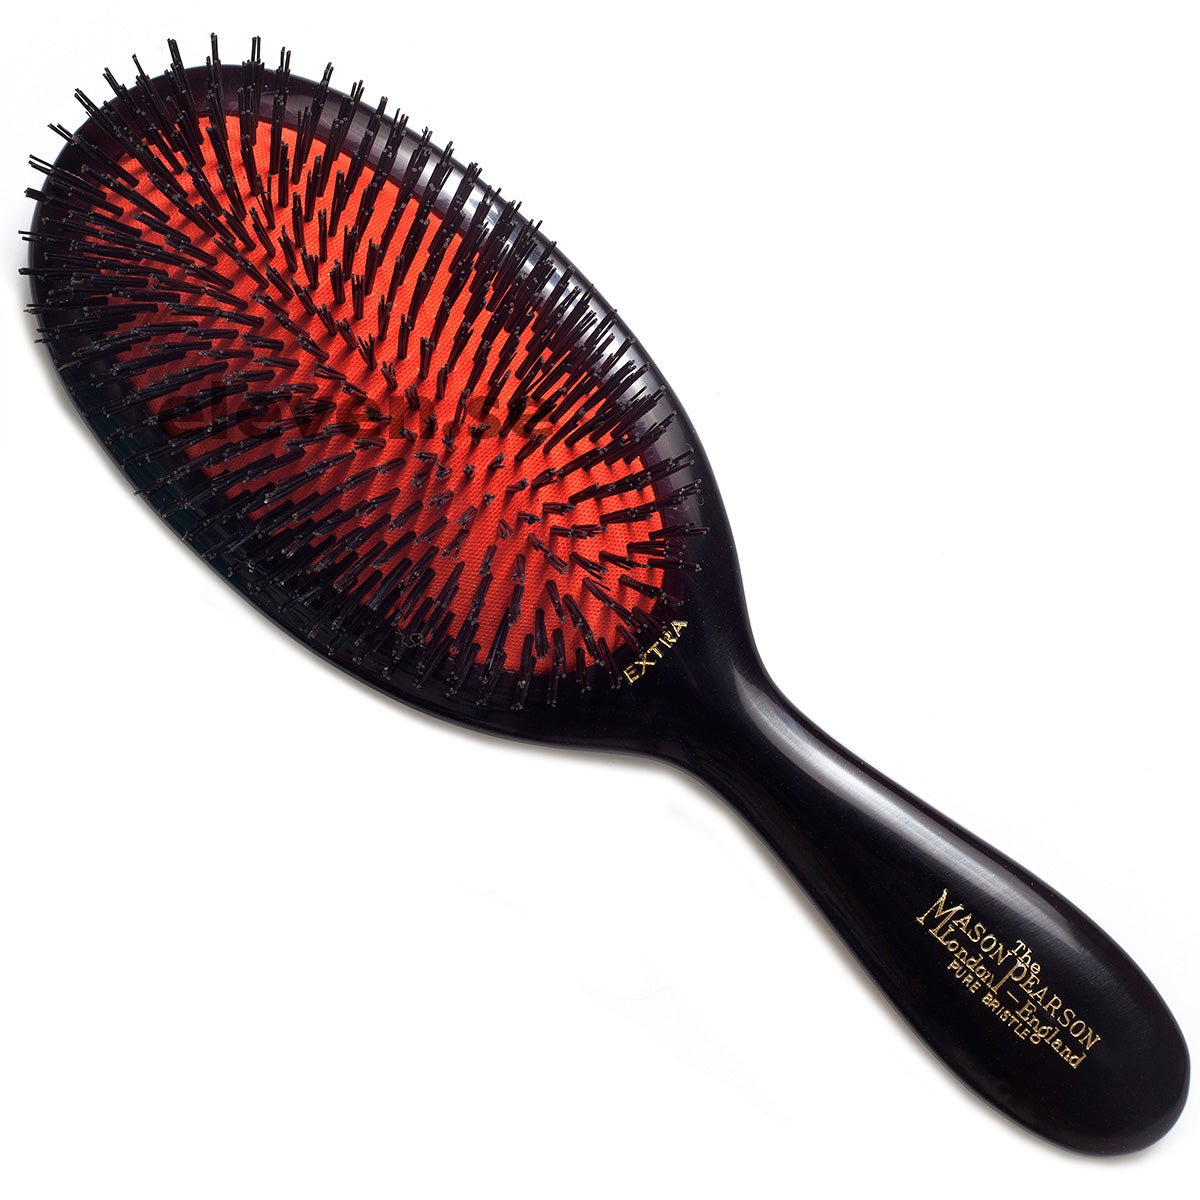 Mason Pearson Large Pure Bristle, Dark Ruby